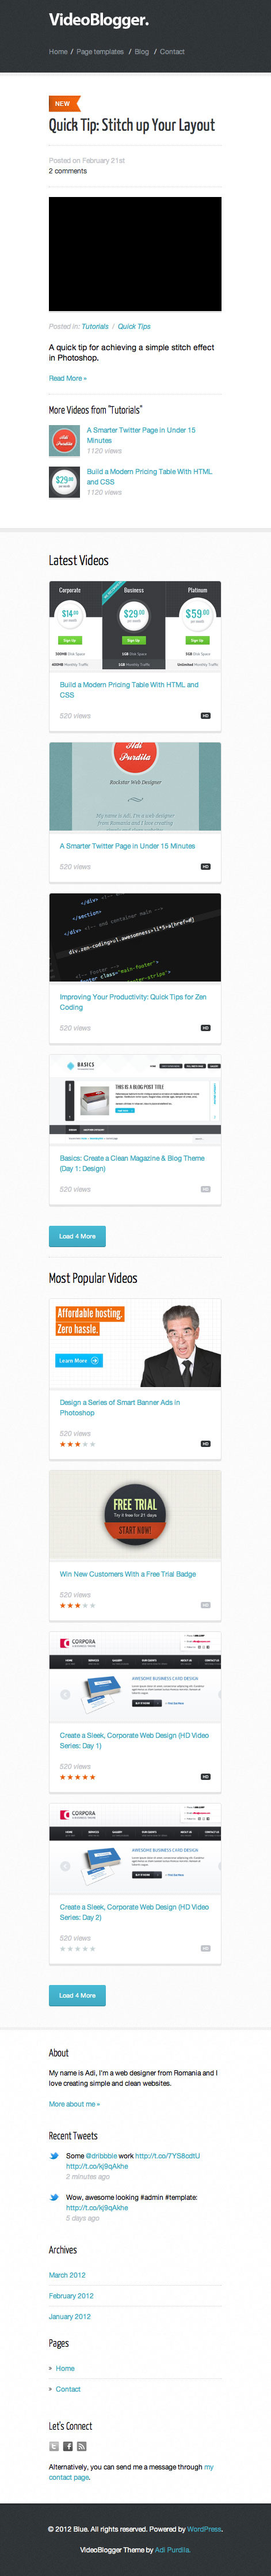 VideoBlogger - Responsive HTML Video Blog Theme - VideoBlogger - Homepage viewed on a smartphone size screen